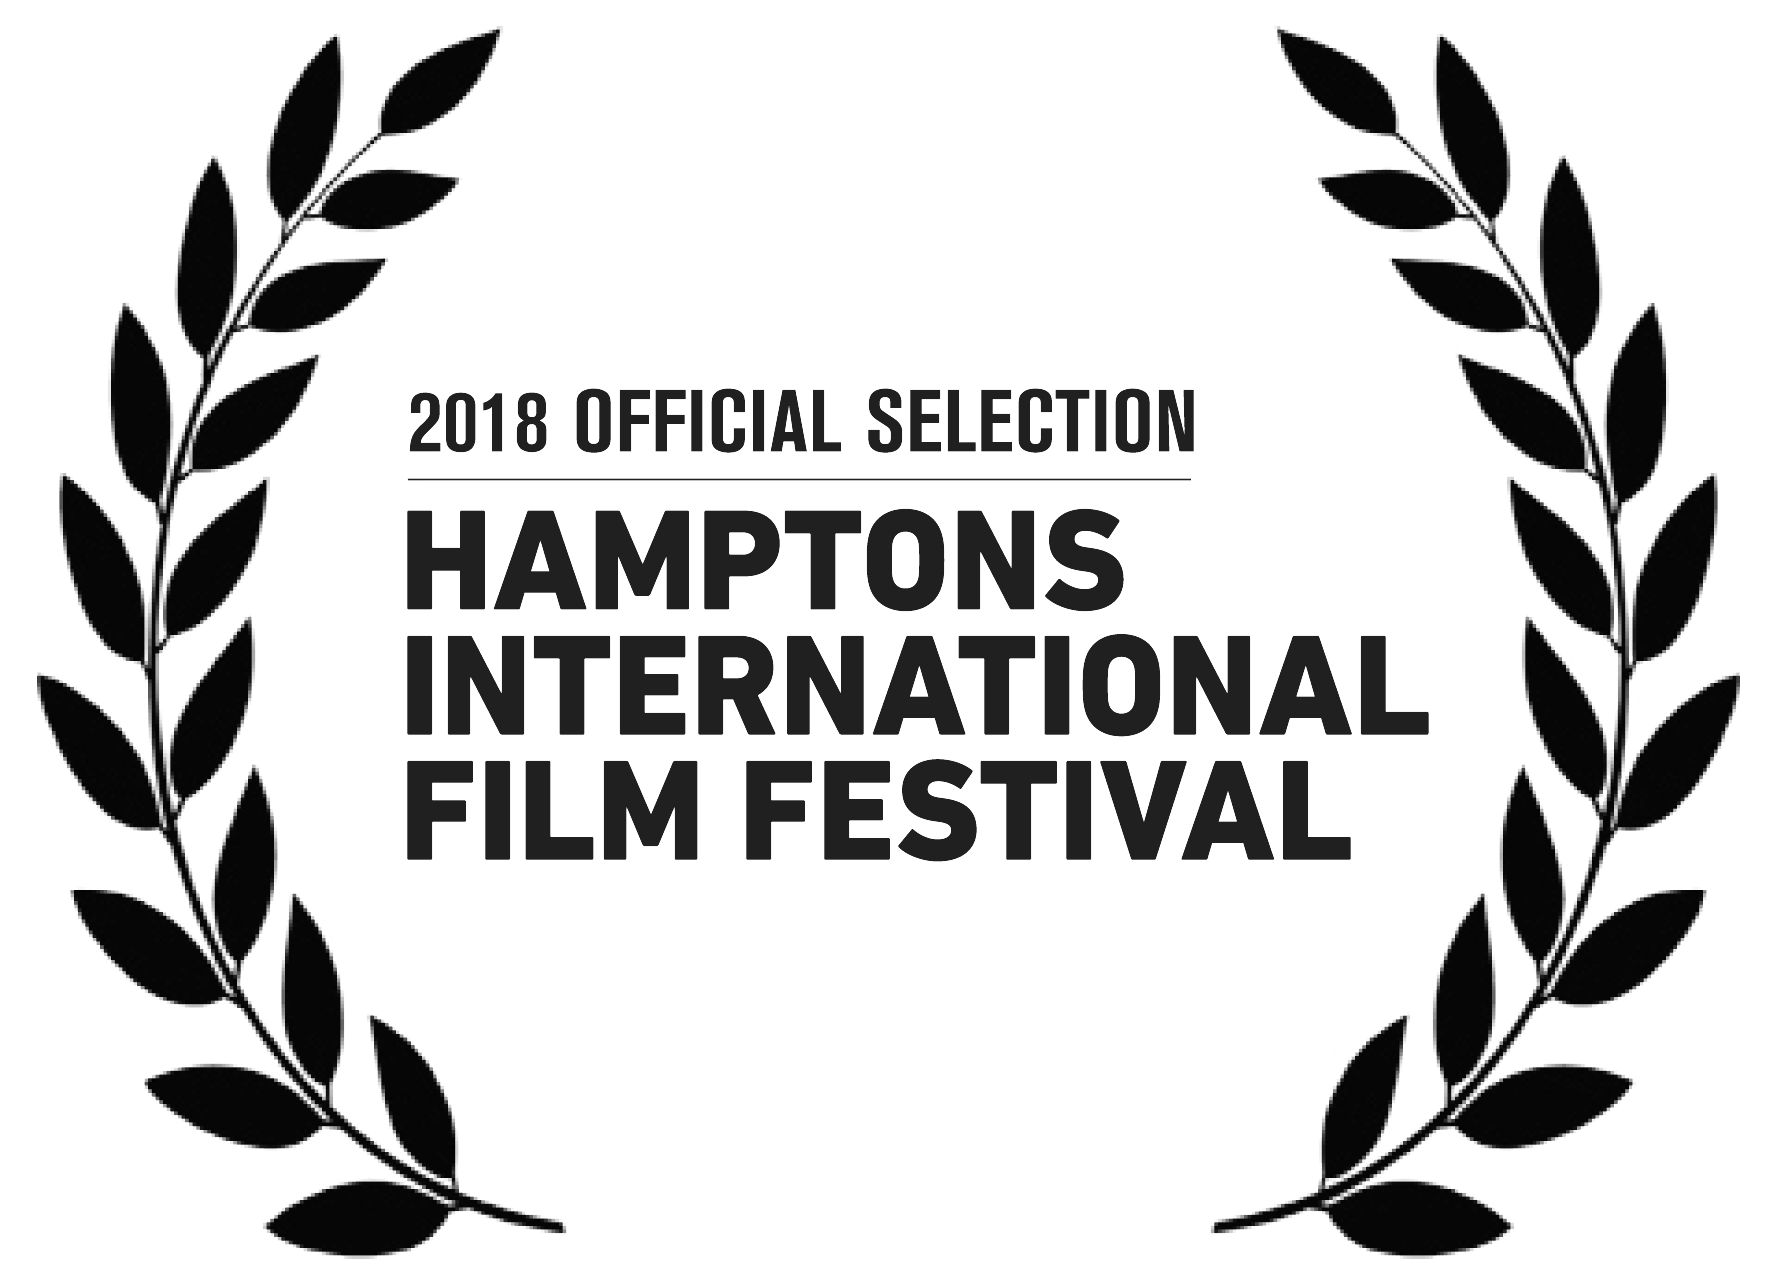 Hamptons International Film Festival - October 6-7, 2018 // East Hampton, NY // Tickets & Info